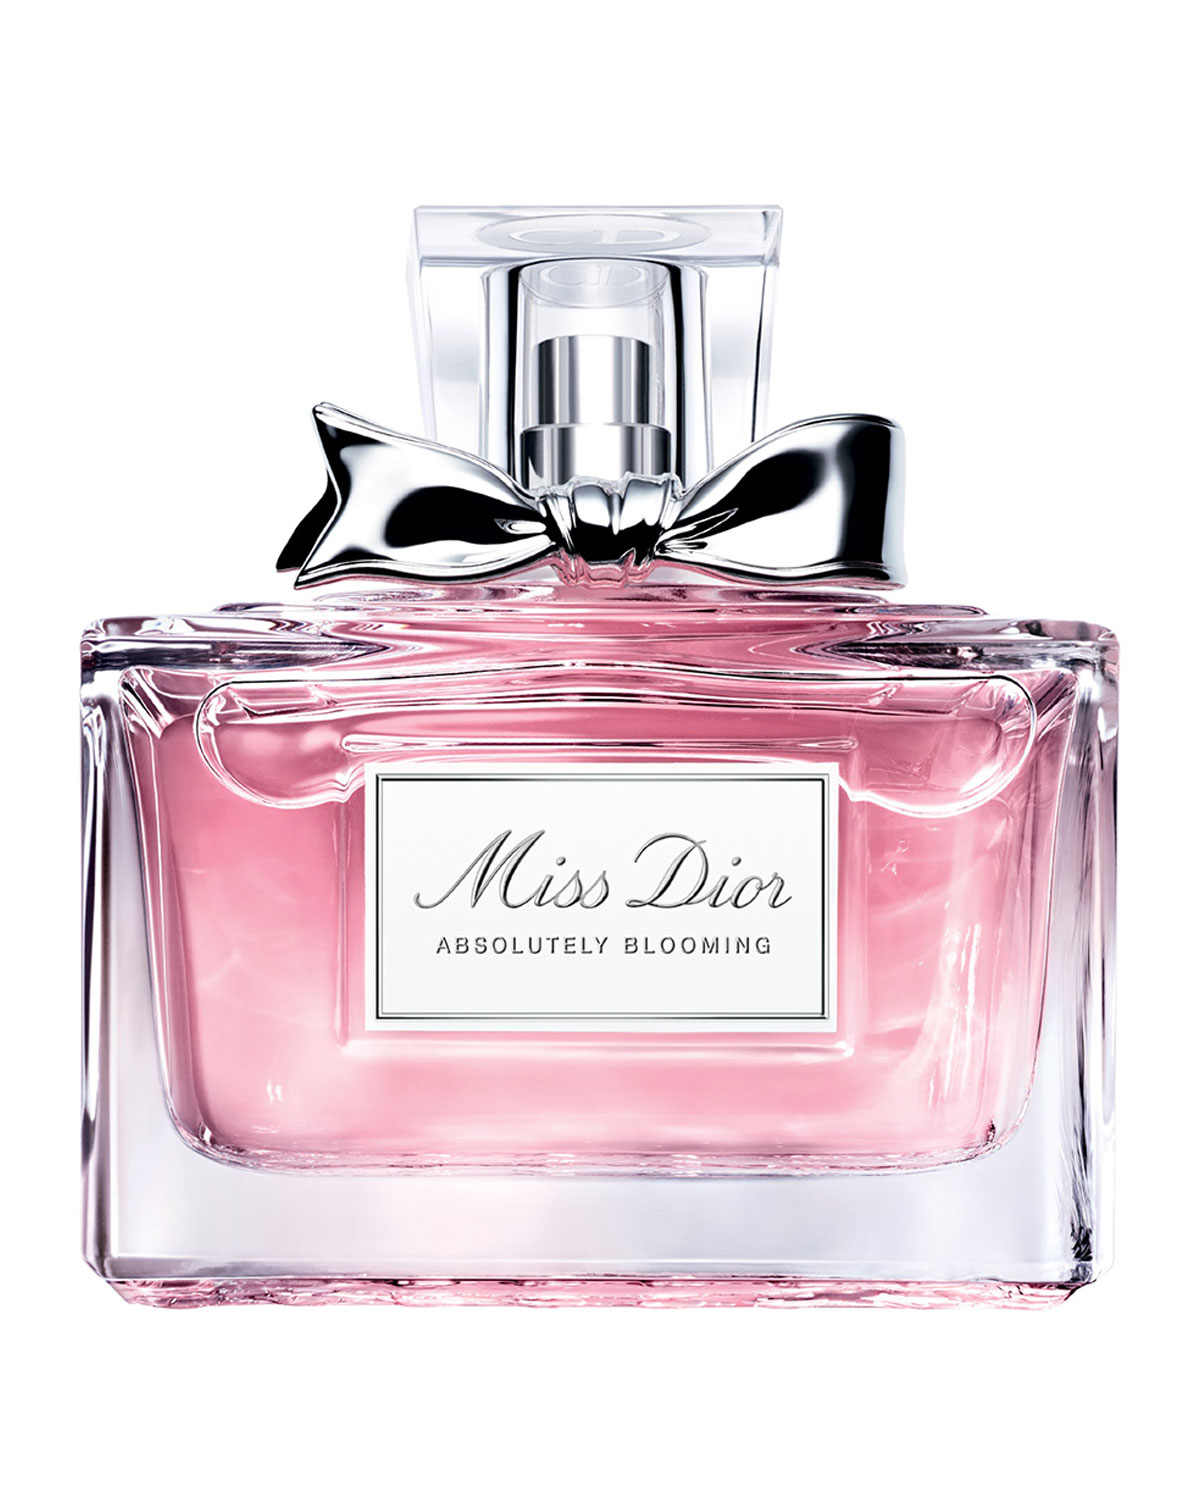 Dior Miss Dior Absolutely Blooming Eau De Parfum 34 Oz Neiman